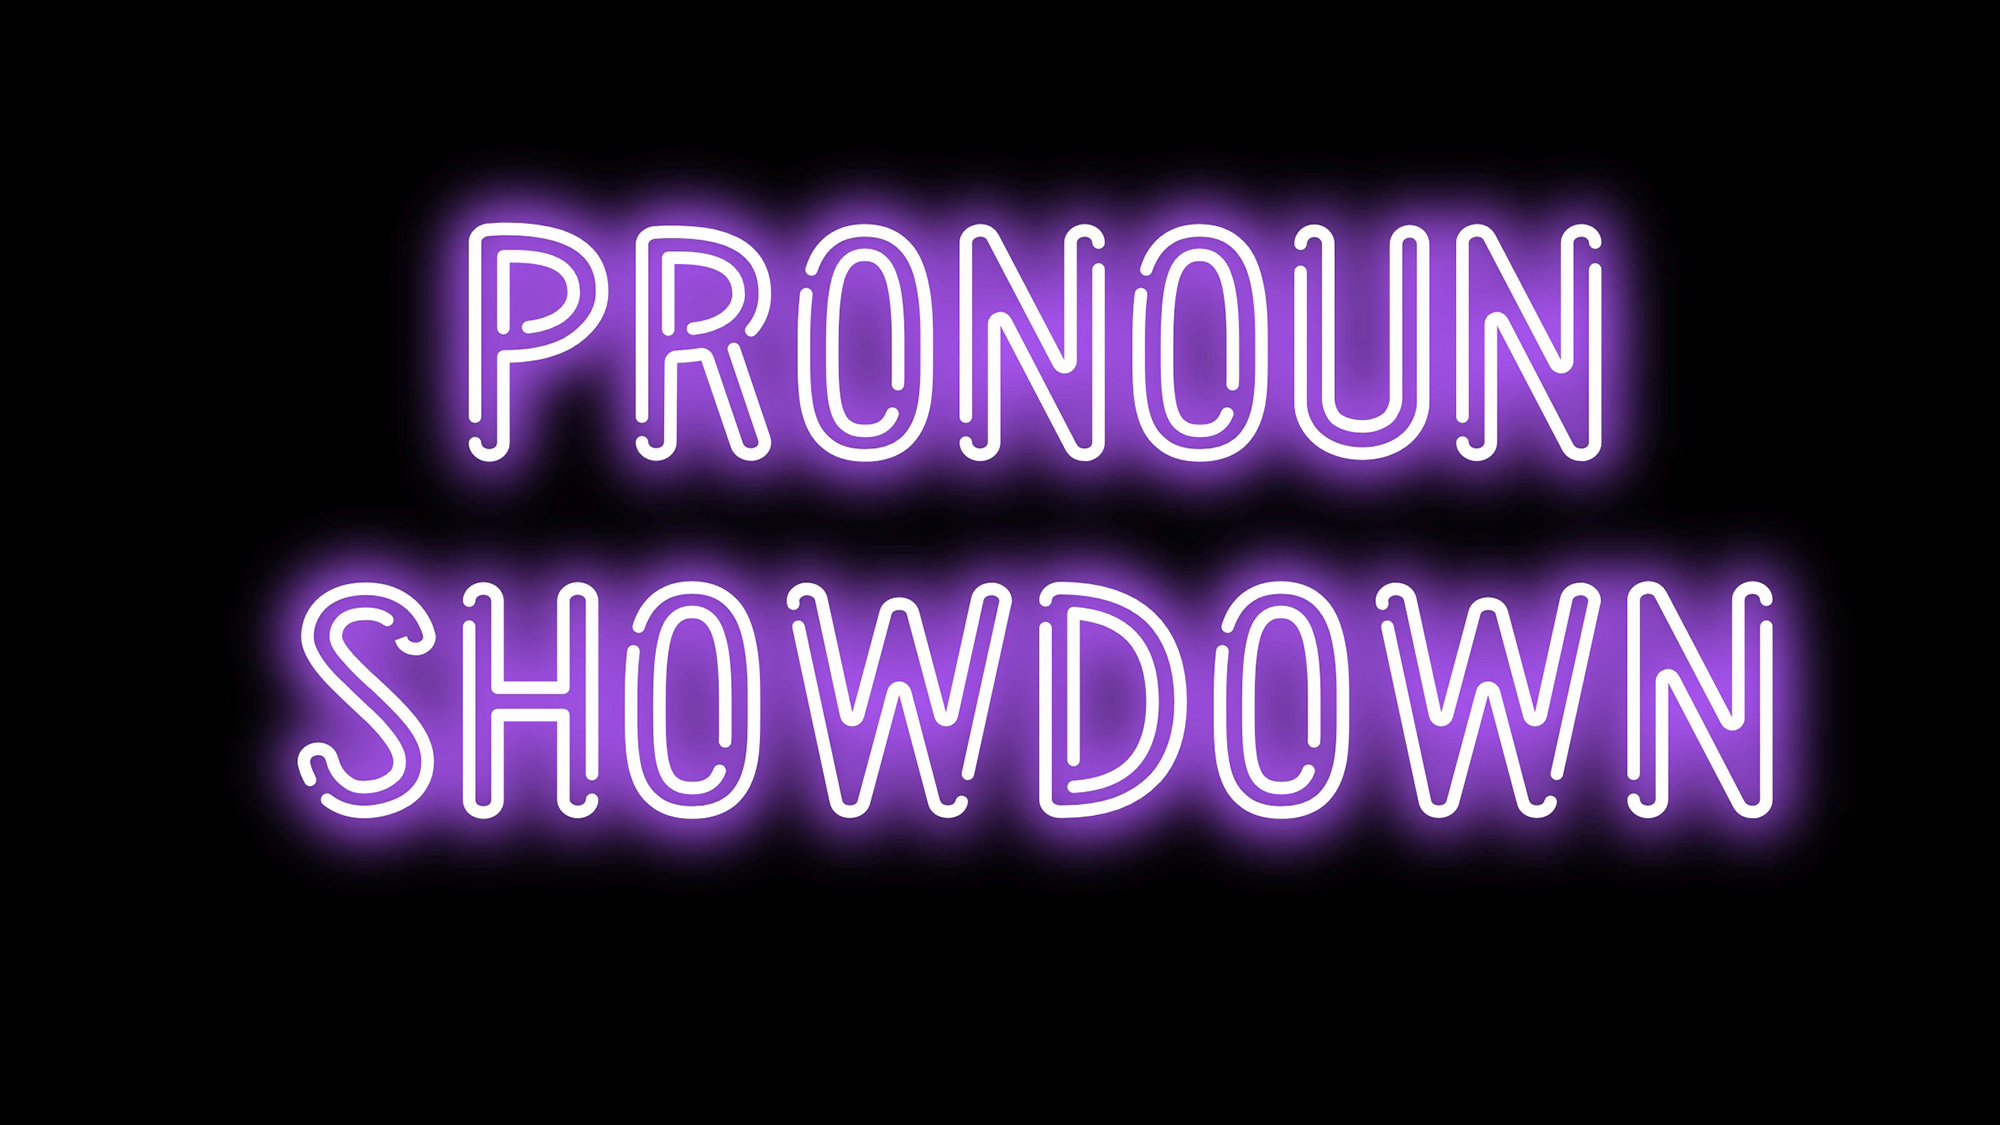 Pronoun Showdown